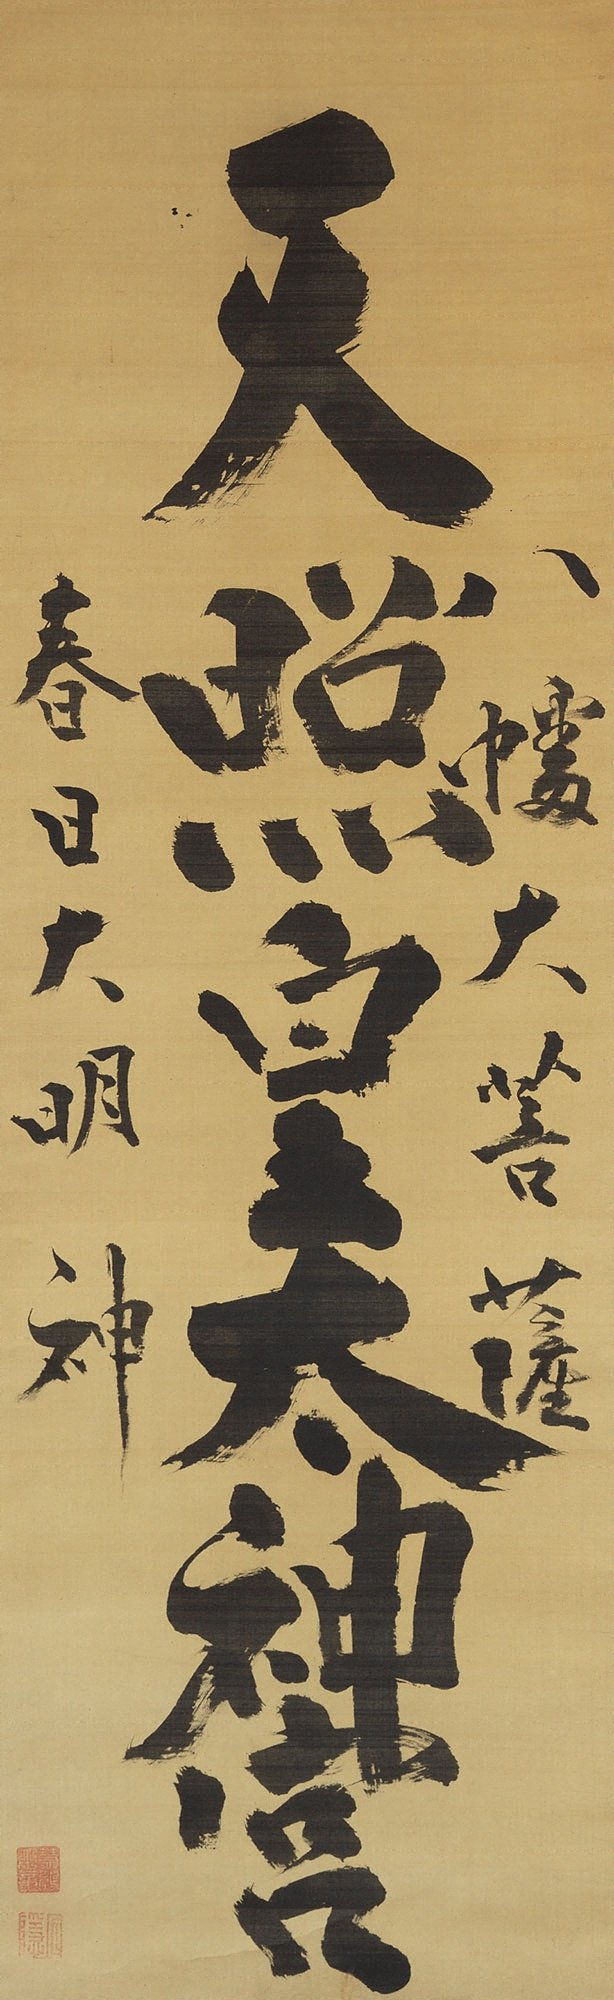 "An image of Calligraphy: ""The Shrine of the heaven illuminating great-august-god [centre]; Hachiman, the great Bodhisattva [right]; Kasuga, the great illuminating god [left]"""